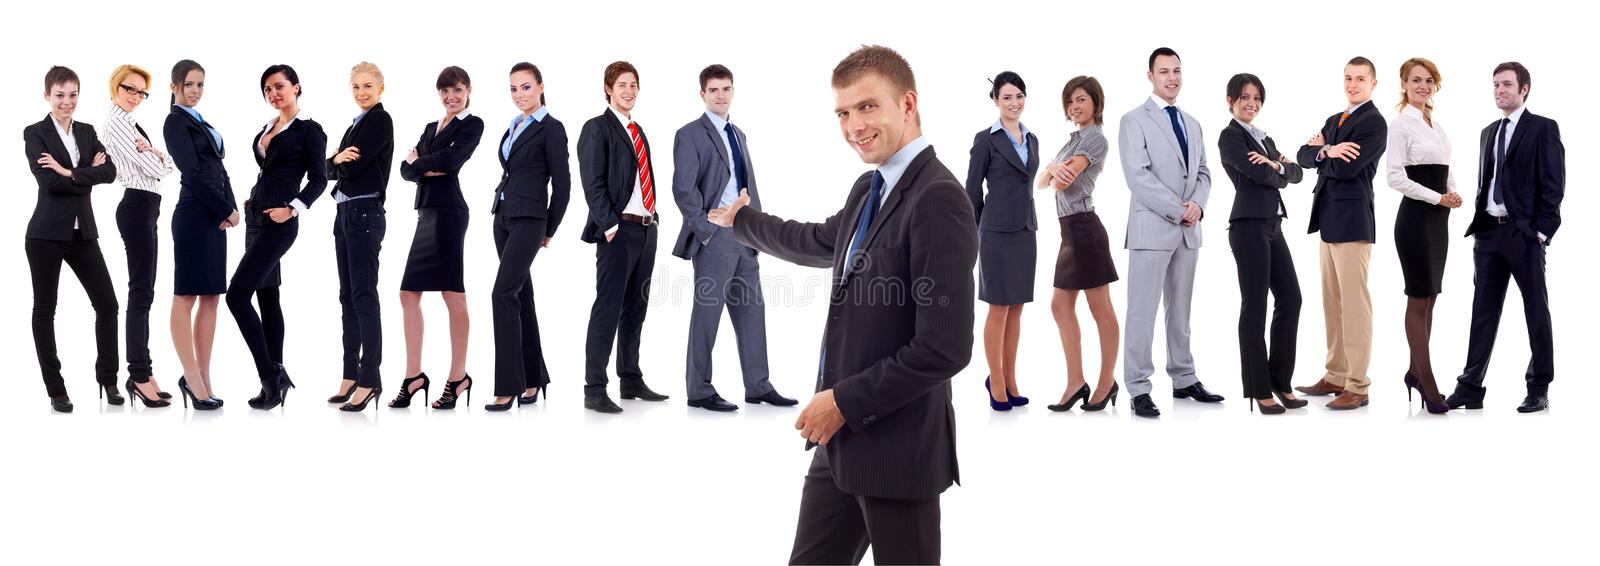 Businessman presenting his team royalty free stock images